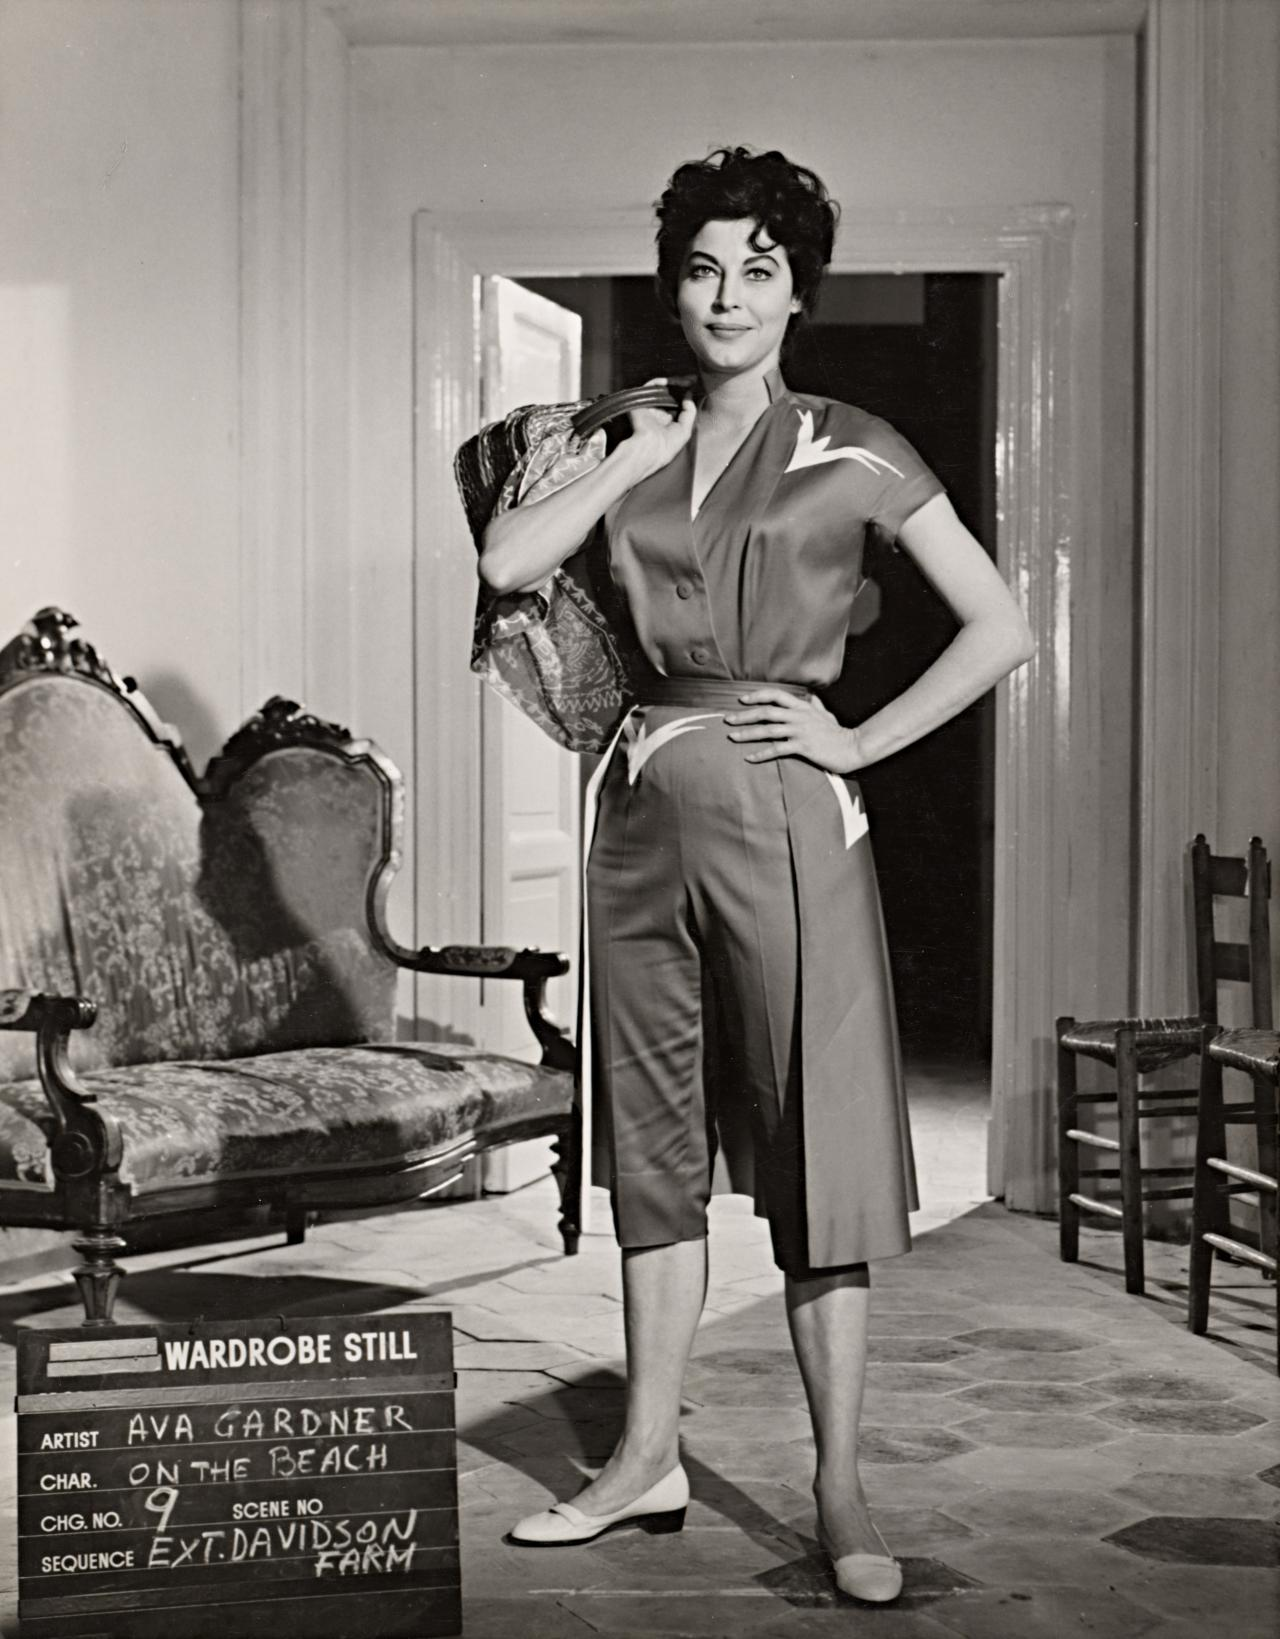 No title (Ava Gardner in wardrobe still for On the beach: Davidson farm)